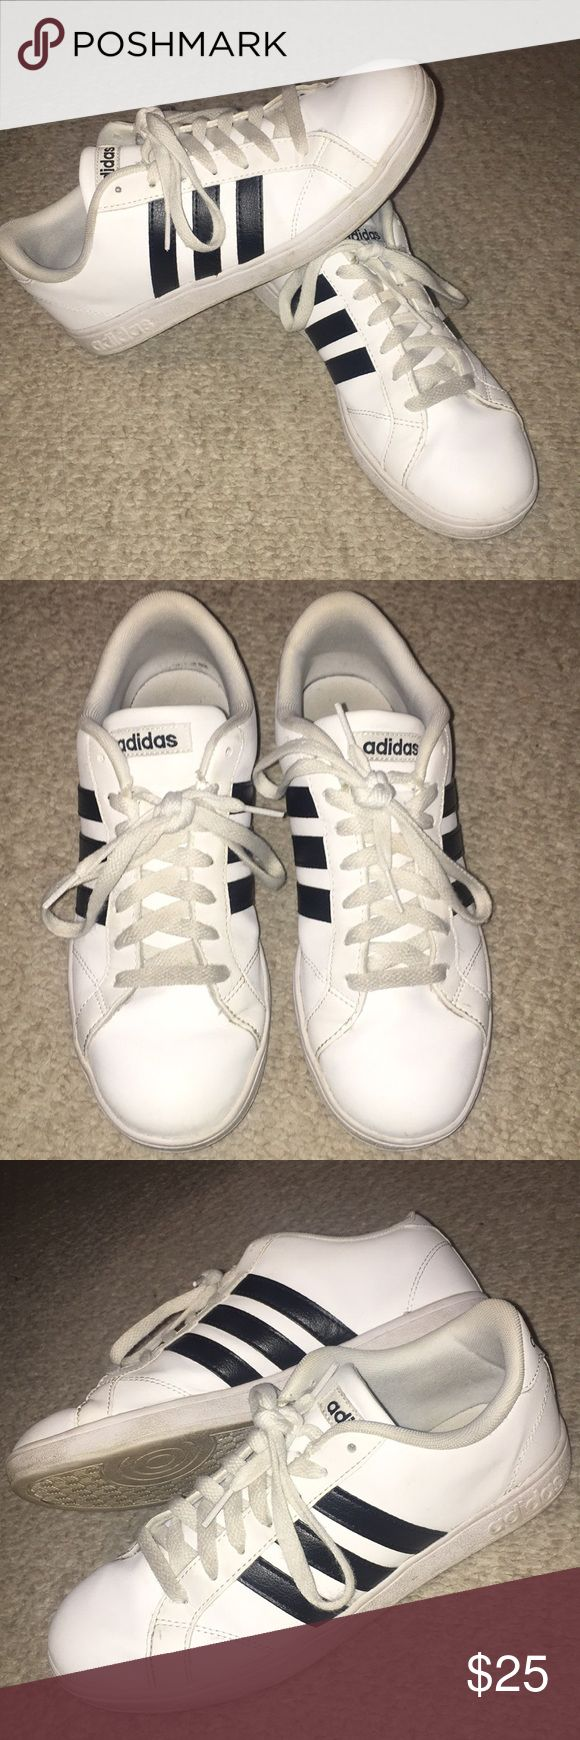 Adidas Shoes White and black women's Adidas! Previously loved but still in great condition. Size 8, true to size! adidas Shoes Athletic Shoes